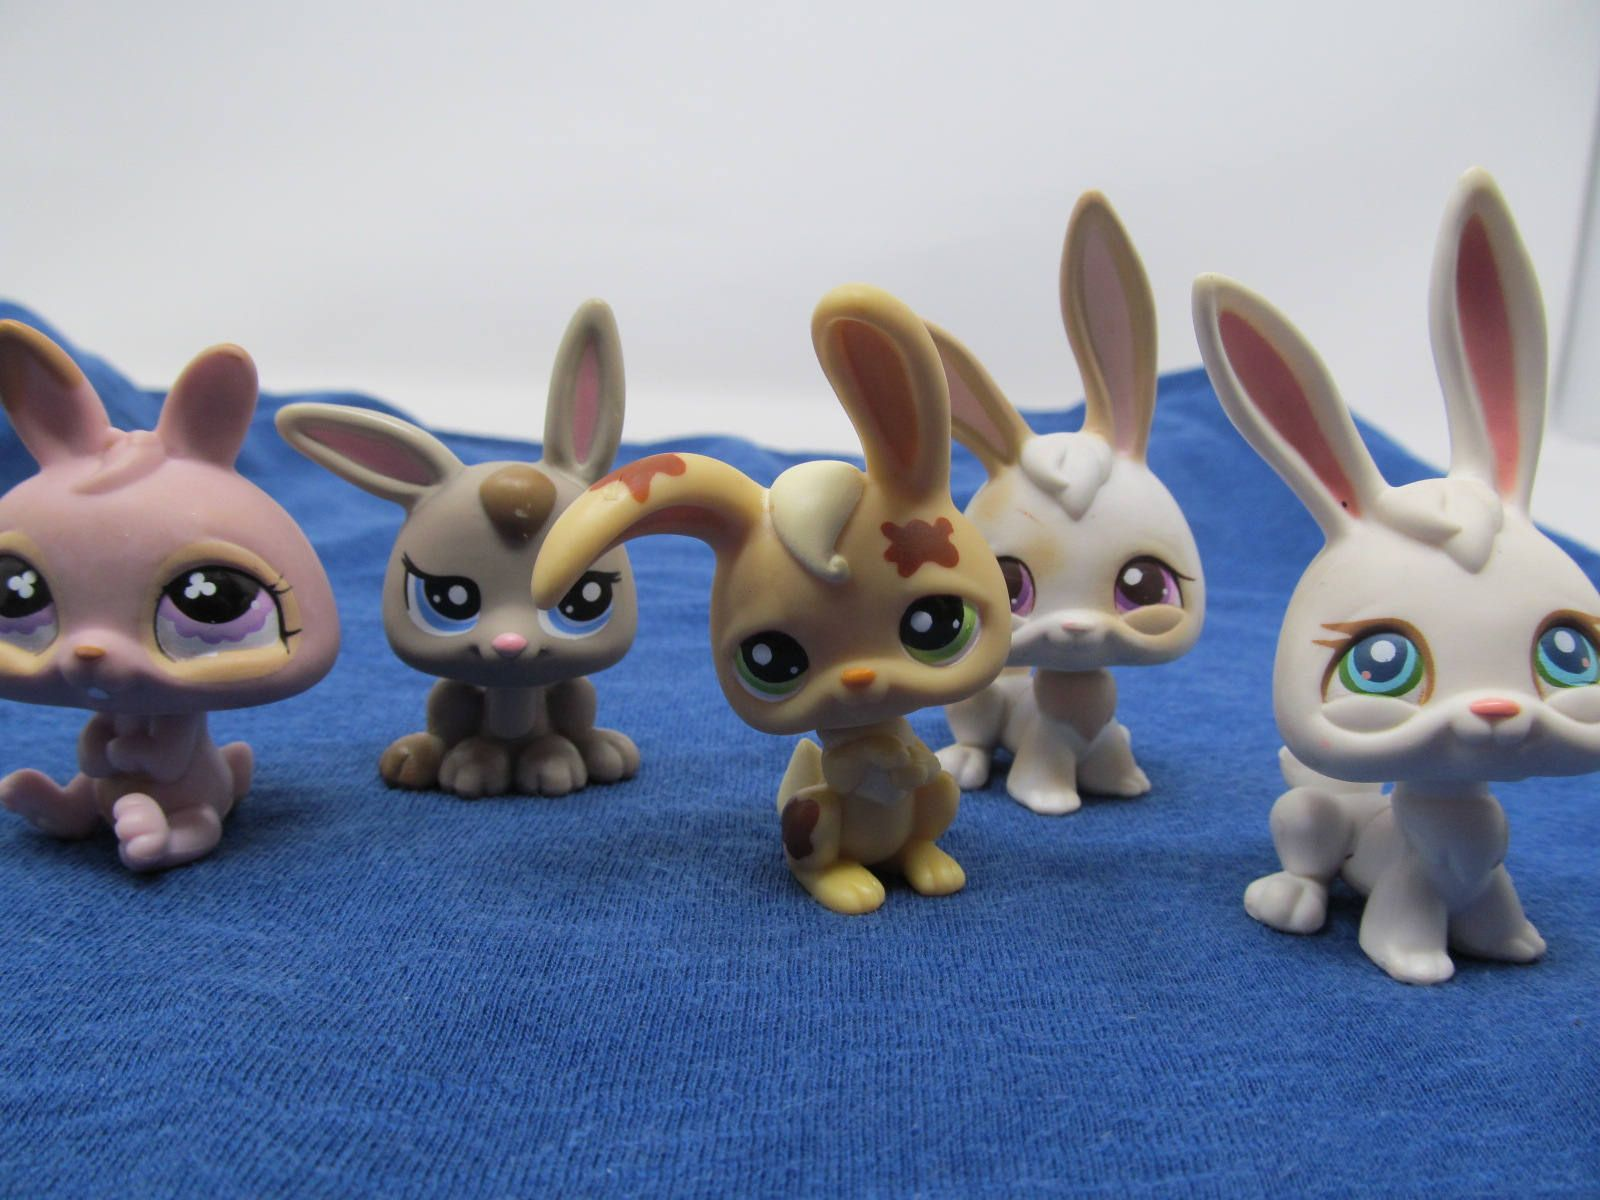 5 Littlest Pet Shop Bunnies Retired Lps Vintage Littlest Pet